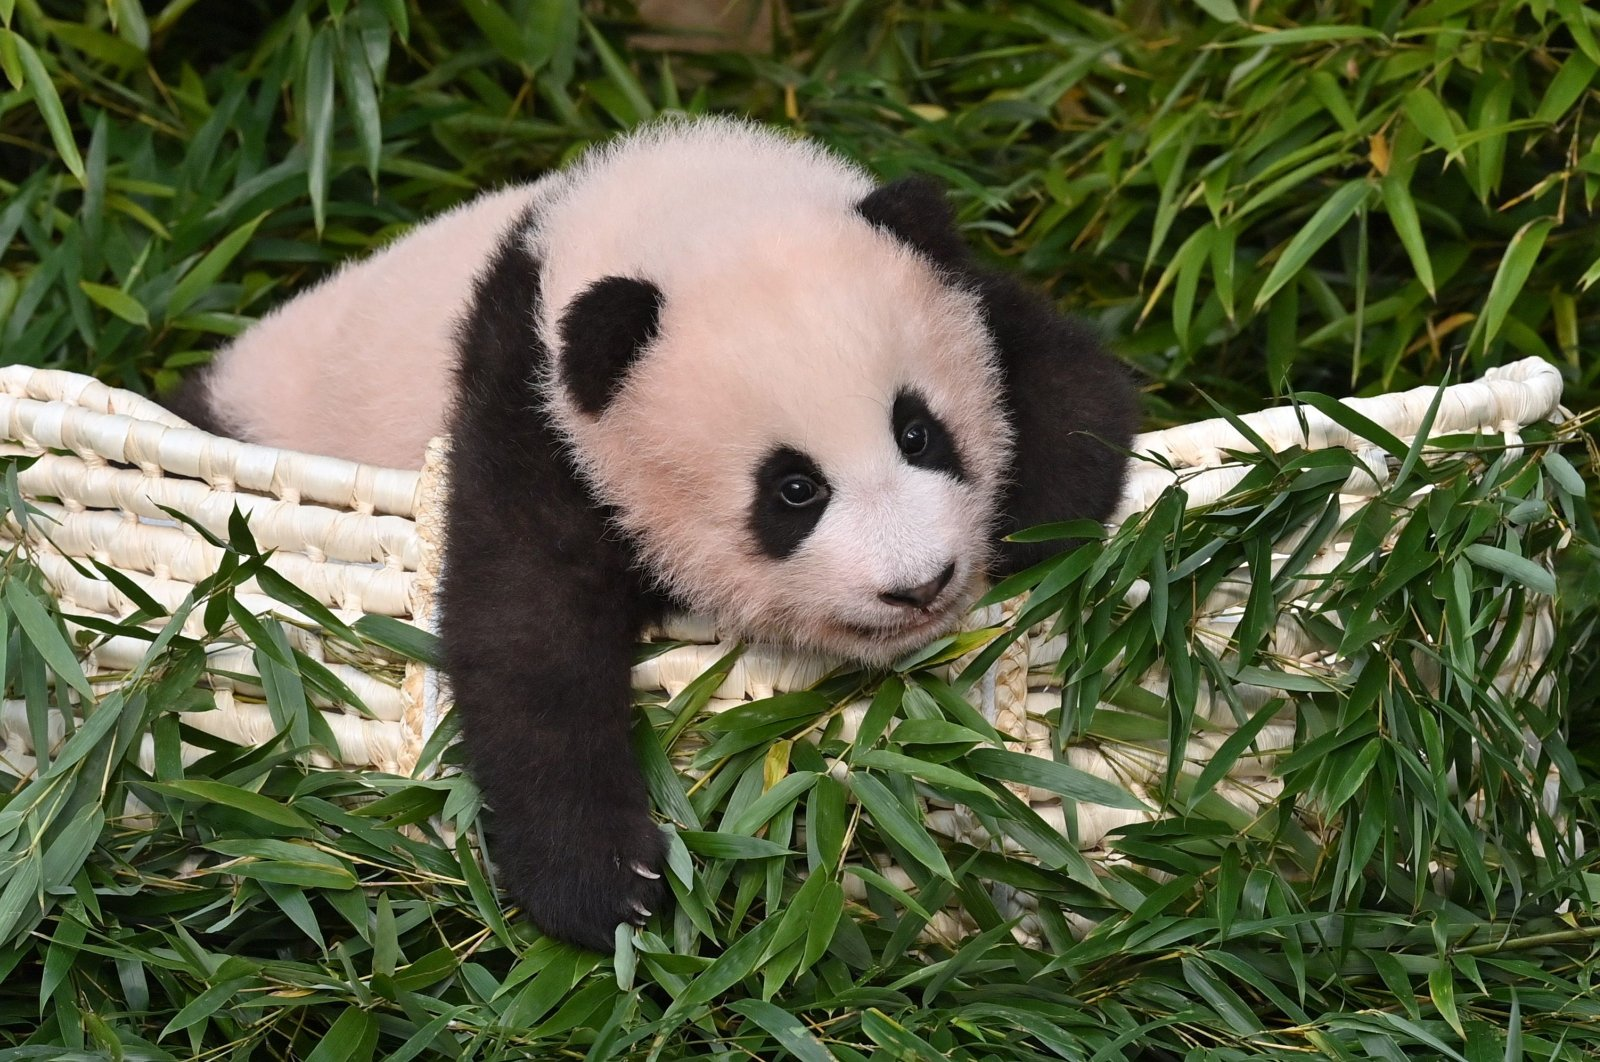 Panda cub Fu Bao, who was born 107 days ago in South Korea, is pictured during a ceremony to reveal her name at Everland Amusement and Animal Park in Yongin on Nov. 4, 2020. (AFP Photo)